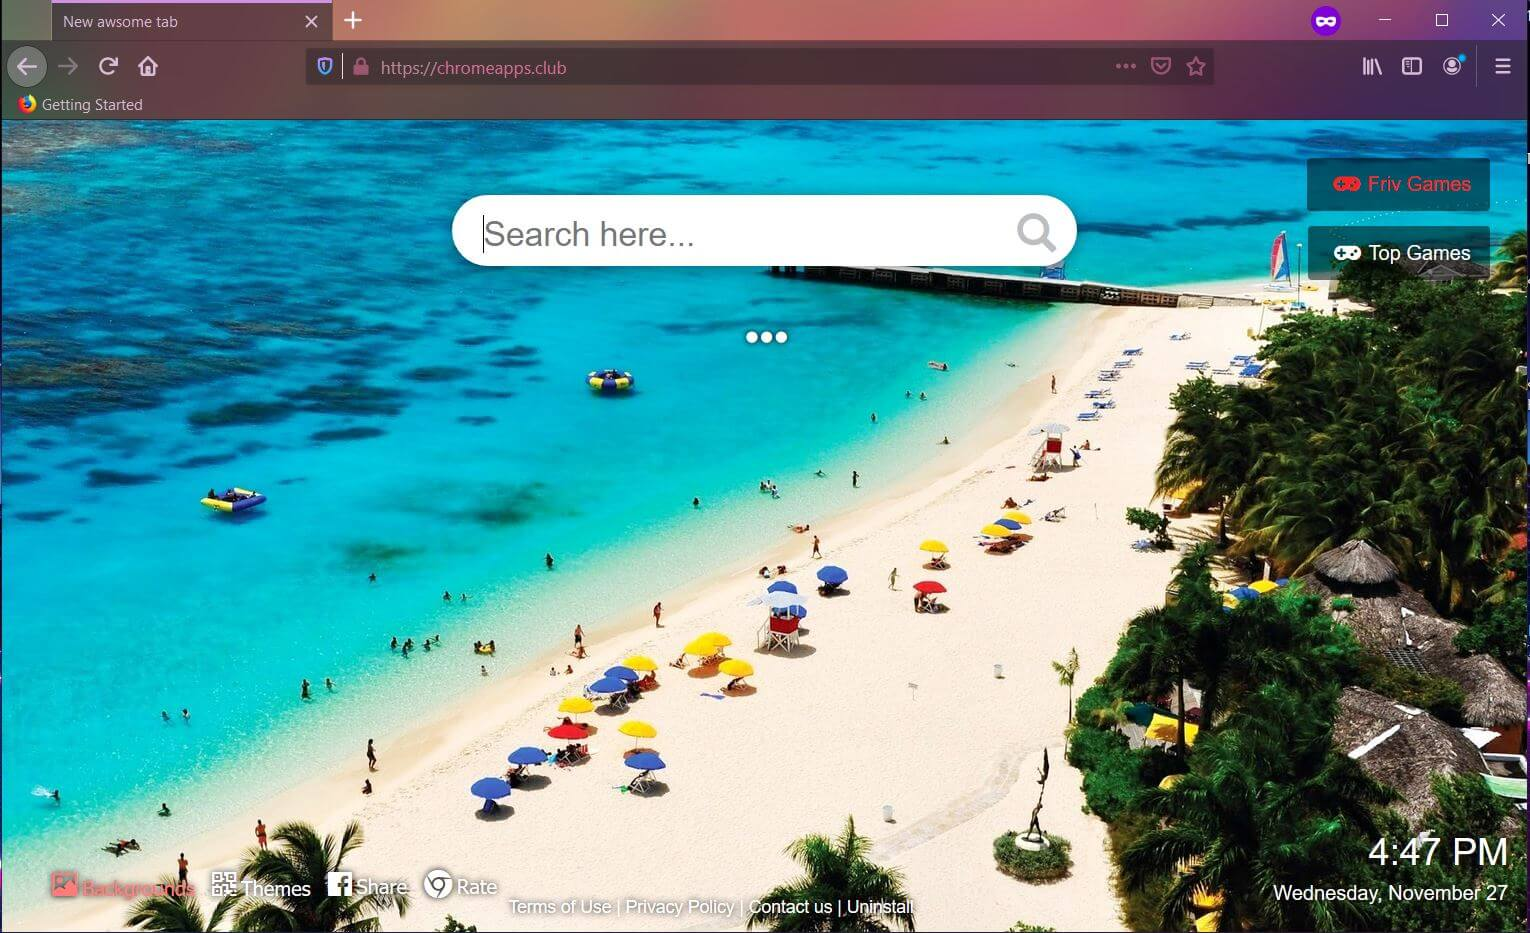 remover Chromeapps.club navegador sequestrador sensorstechforum